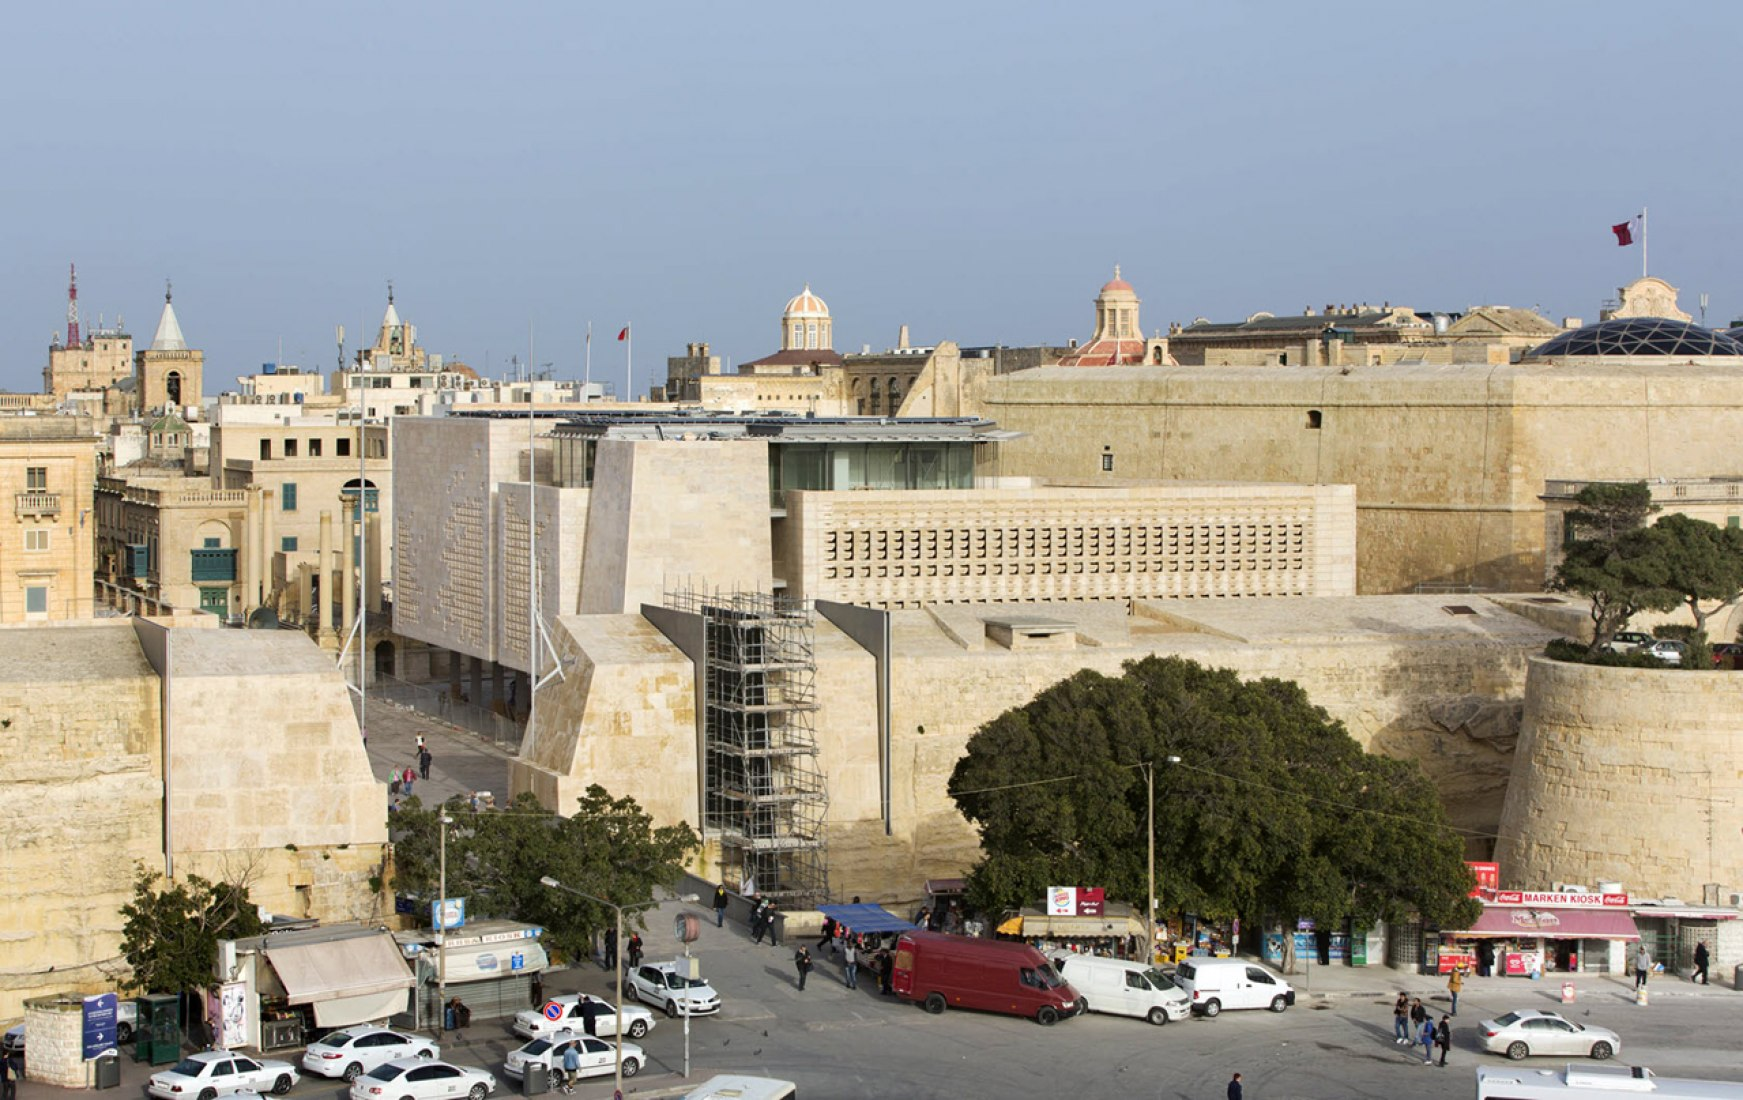 Overview. Reorganization of the entrance to La Valletta by Renzo Piano. Photograph © Michael Dénance.